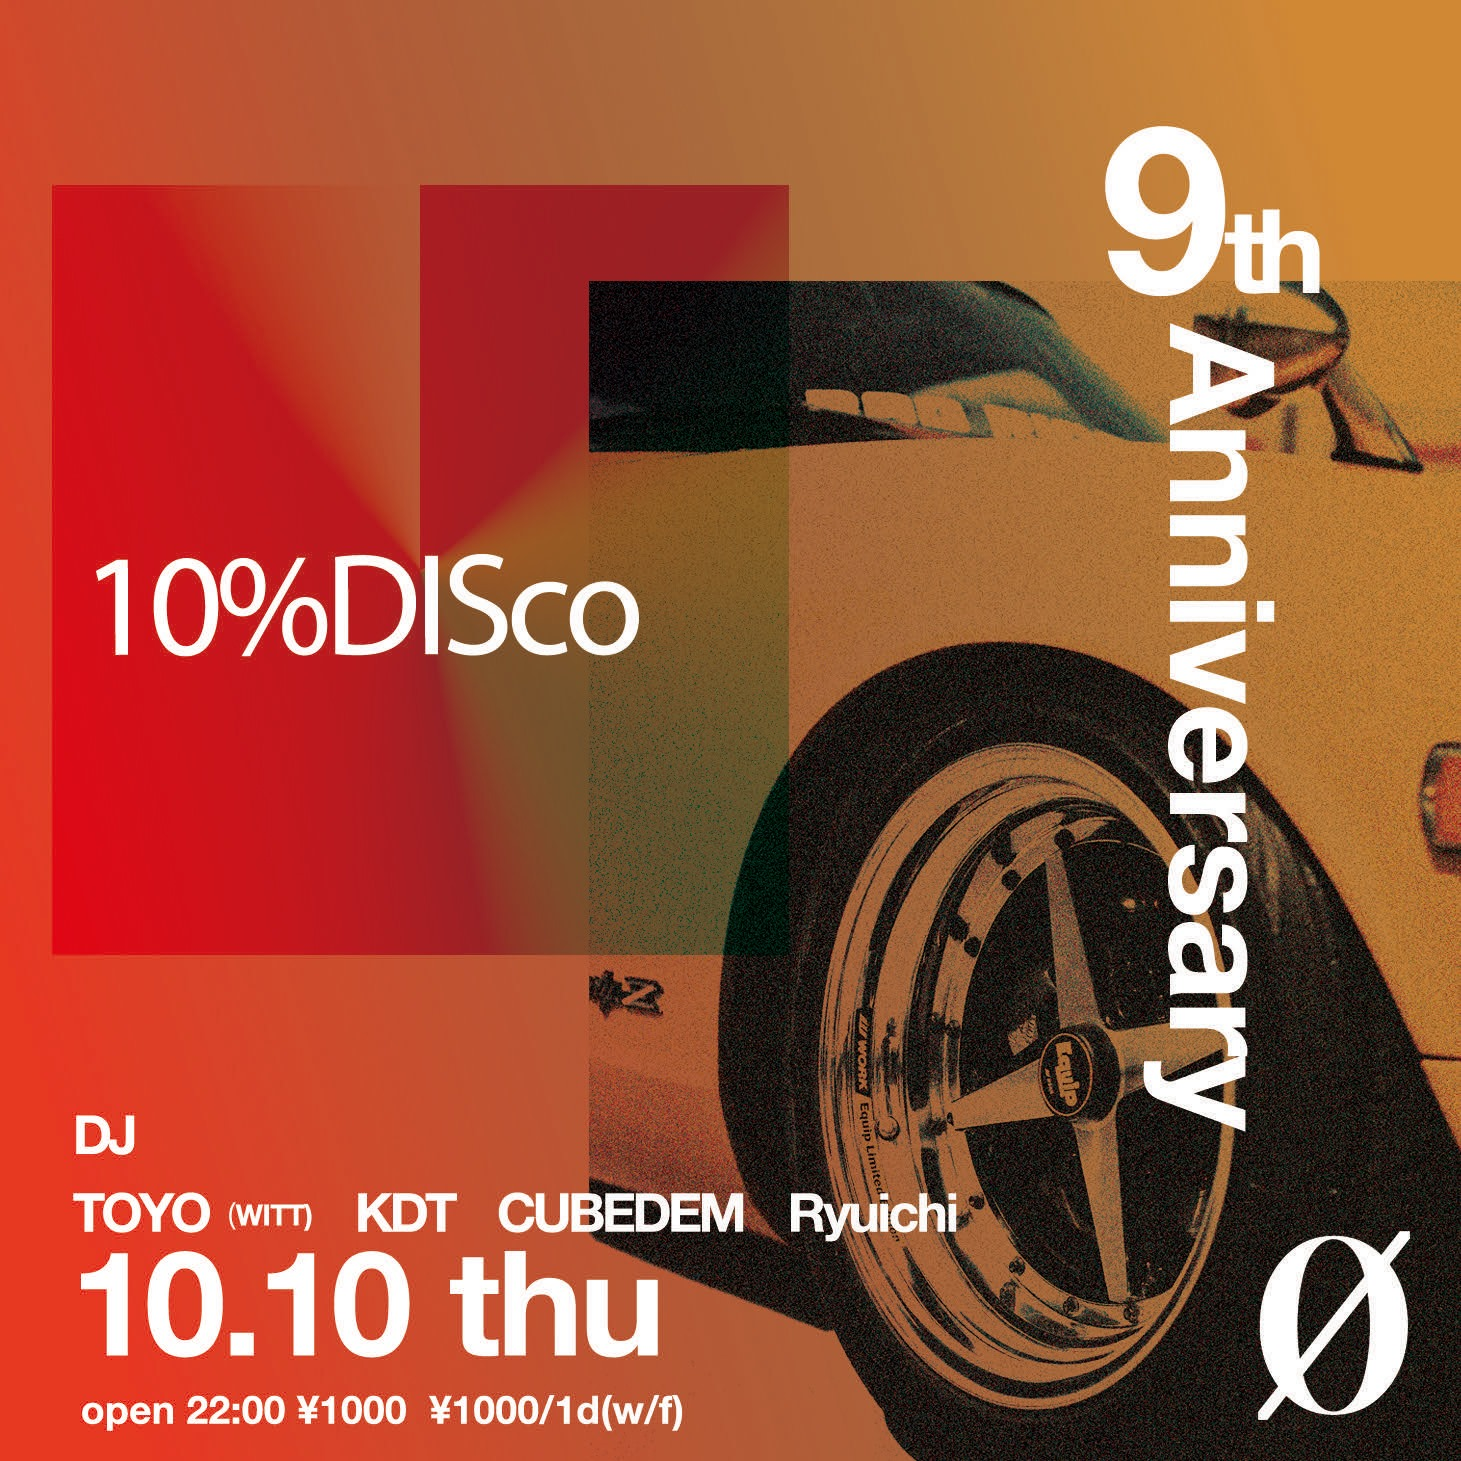 10% DISco ~9th Anniversary~